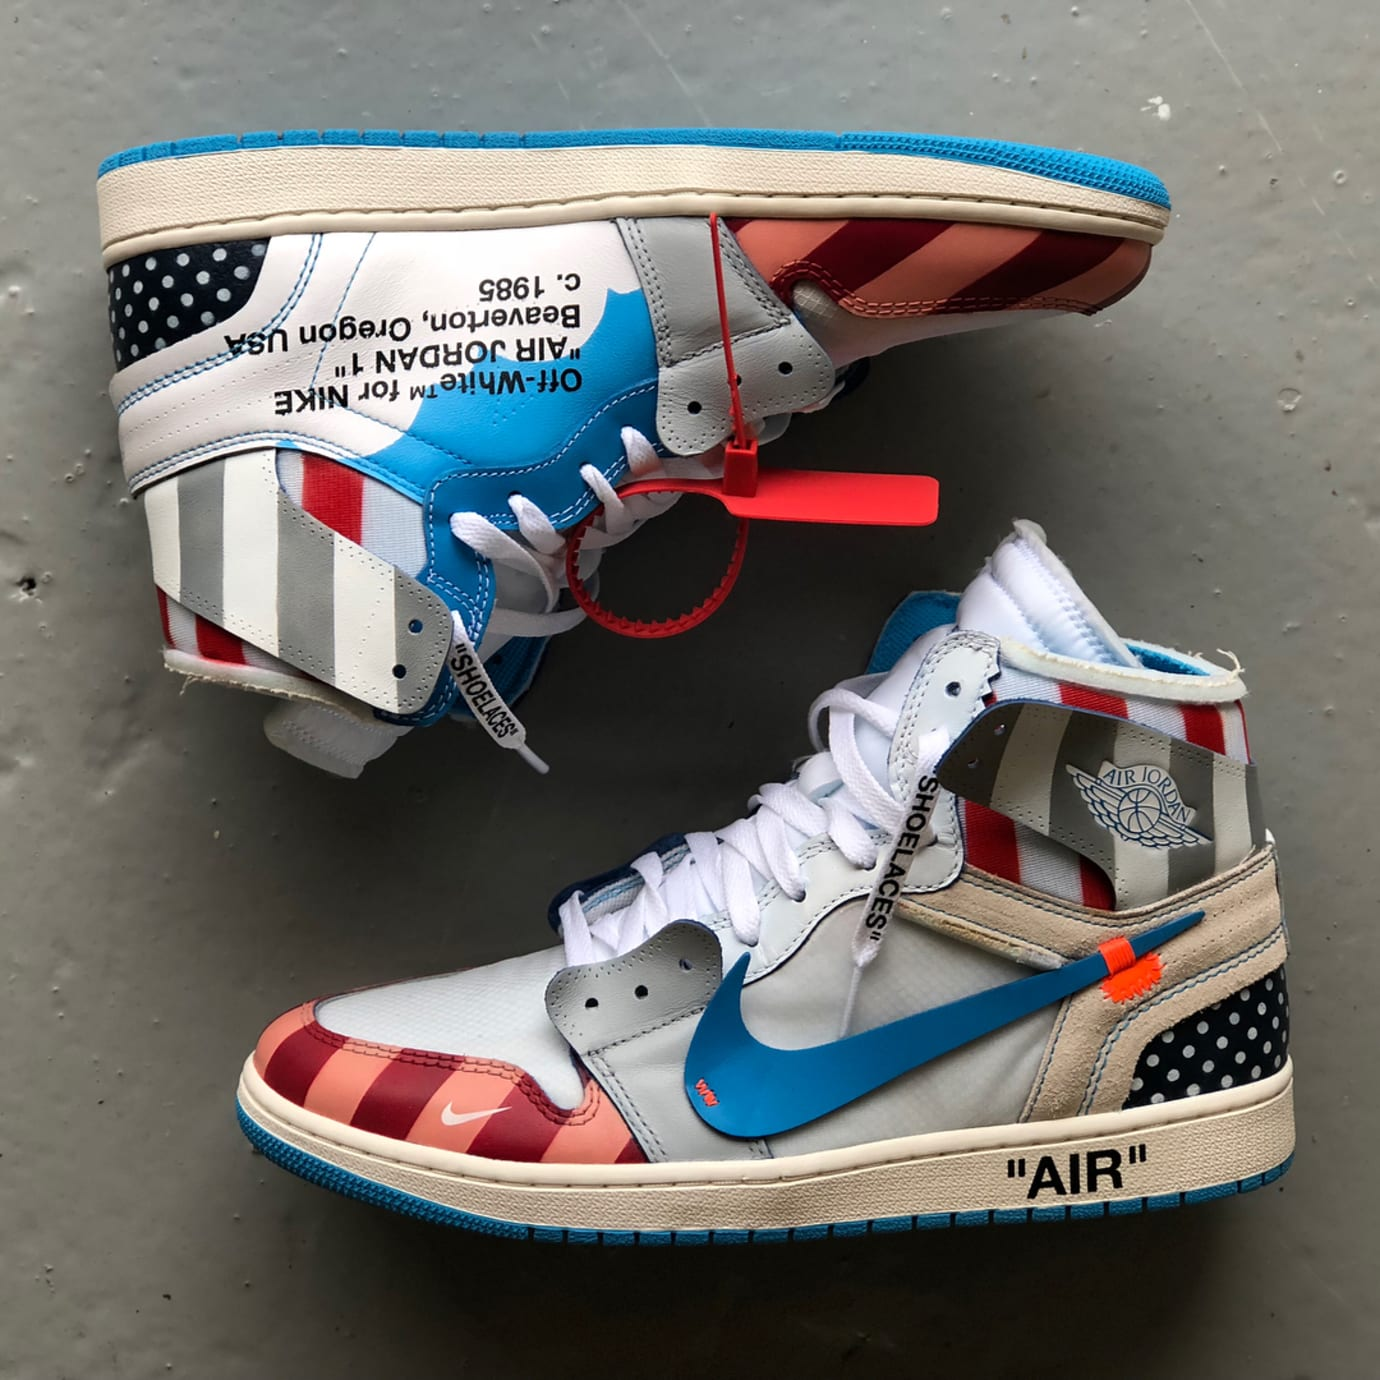 d1637db1c404 Parra x Off-White x Air Jordan 1 Mache Custom Profile